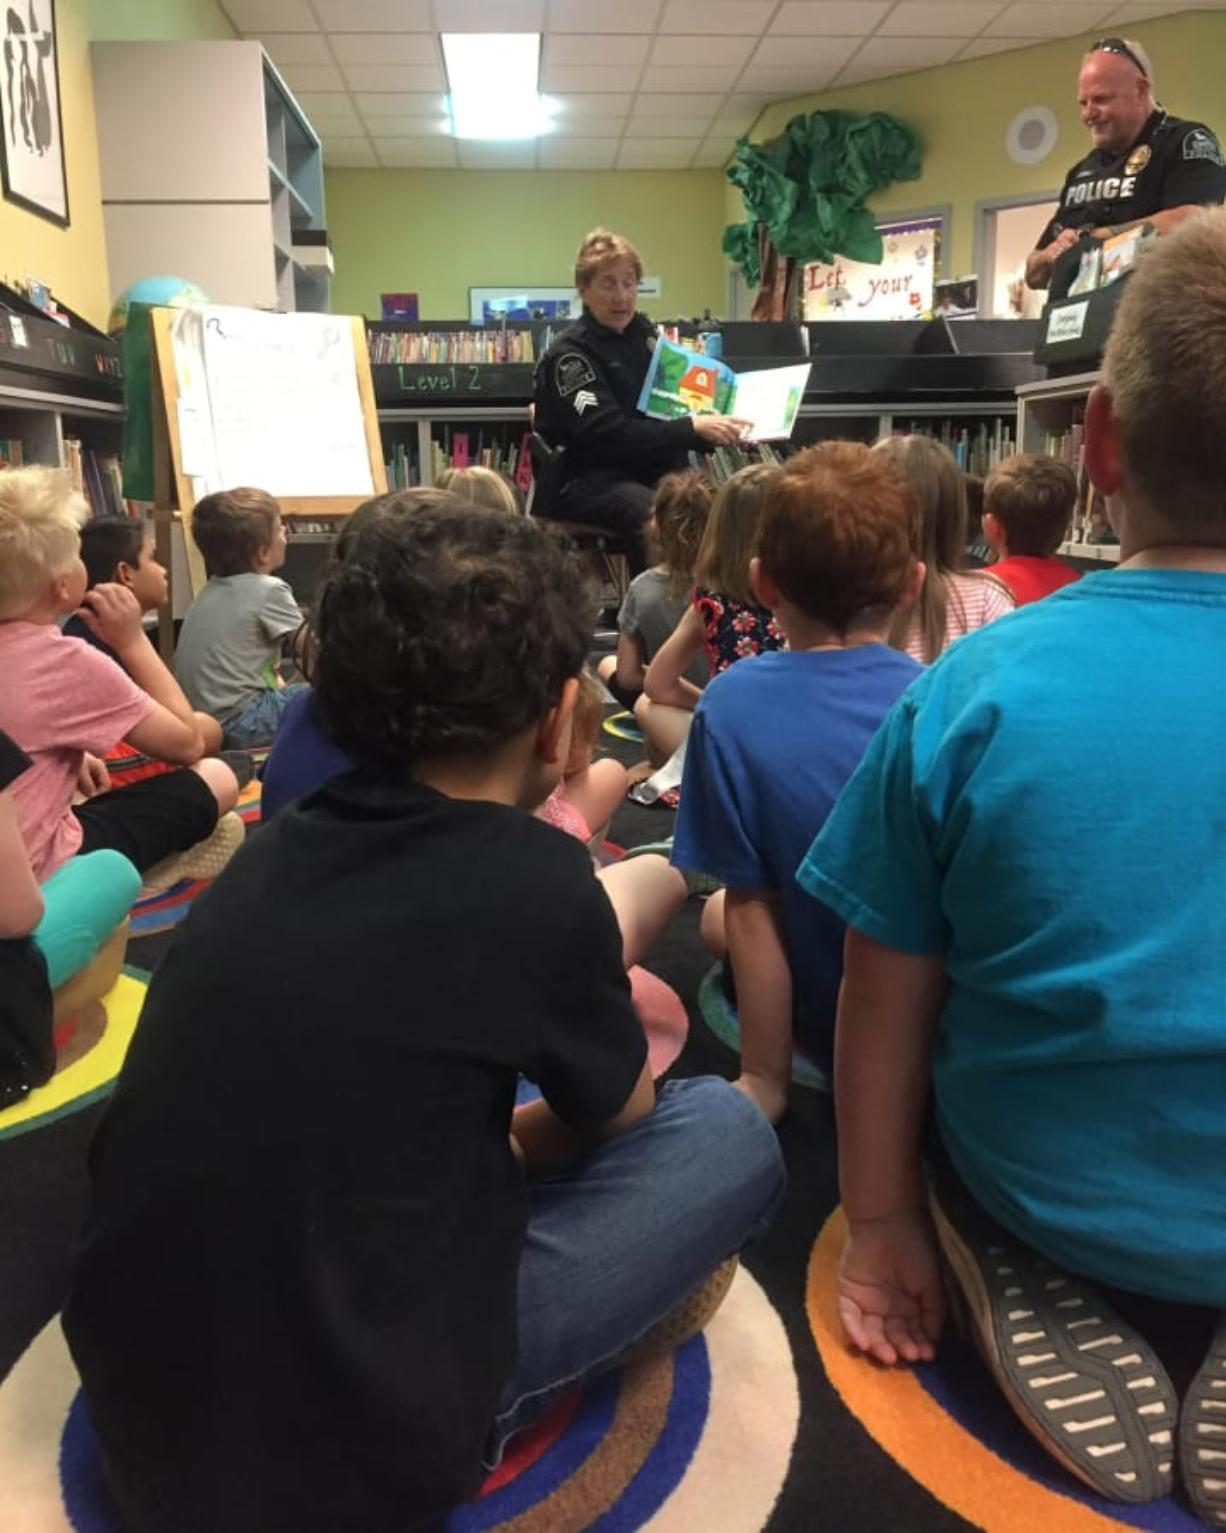 Ridgefield Students Earn Police Visits For Good Behavior